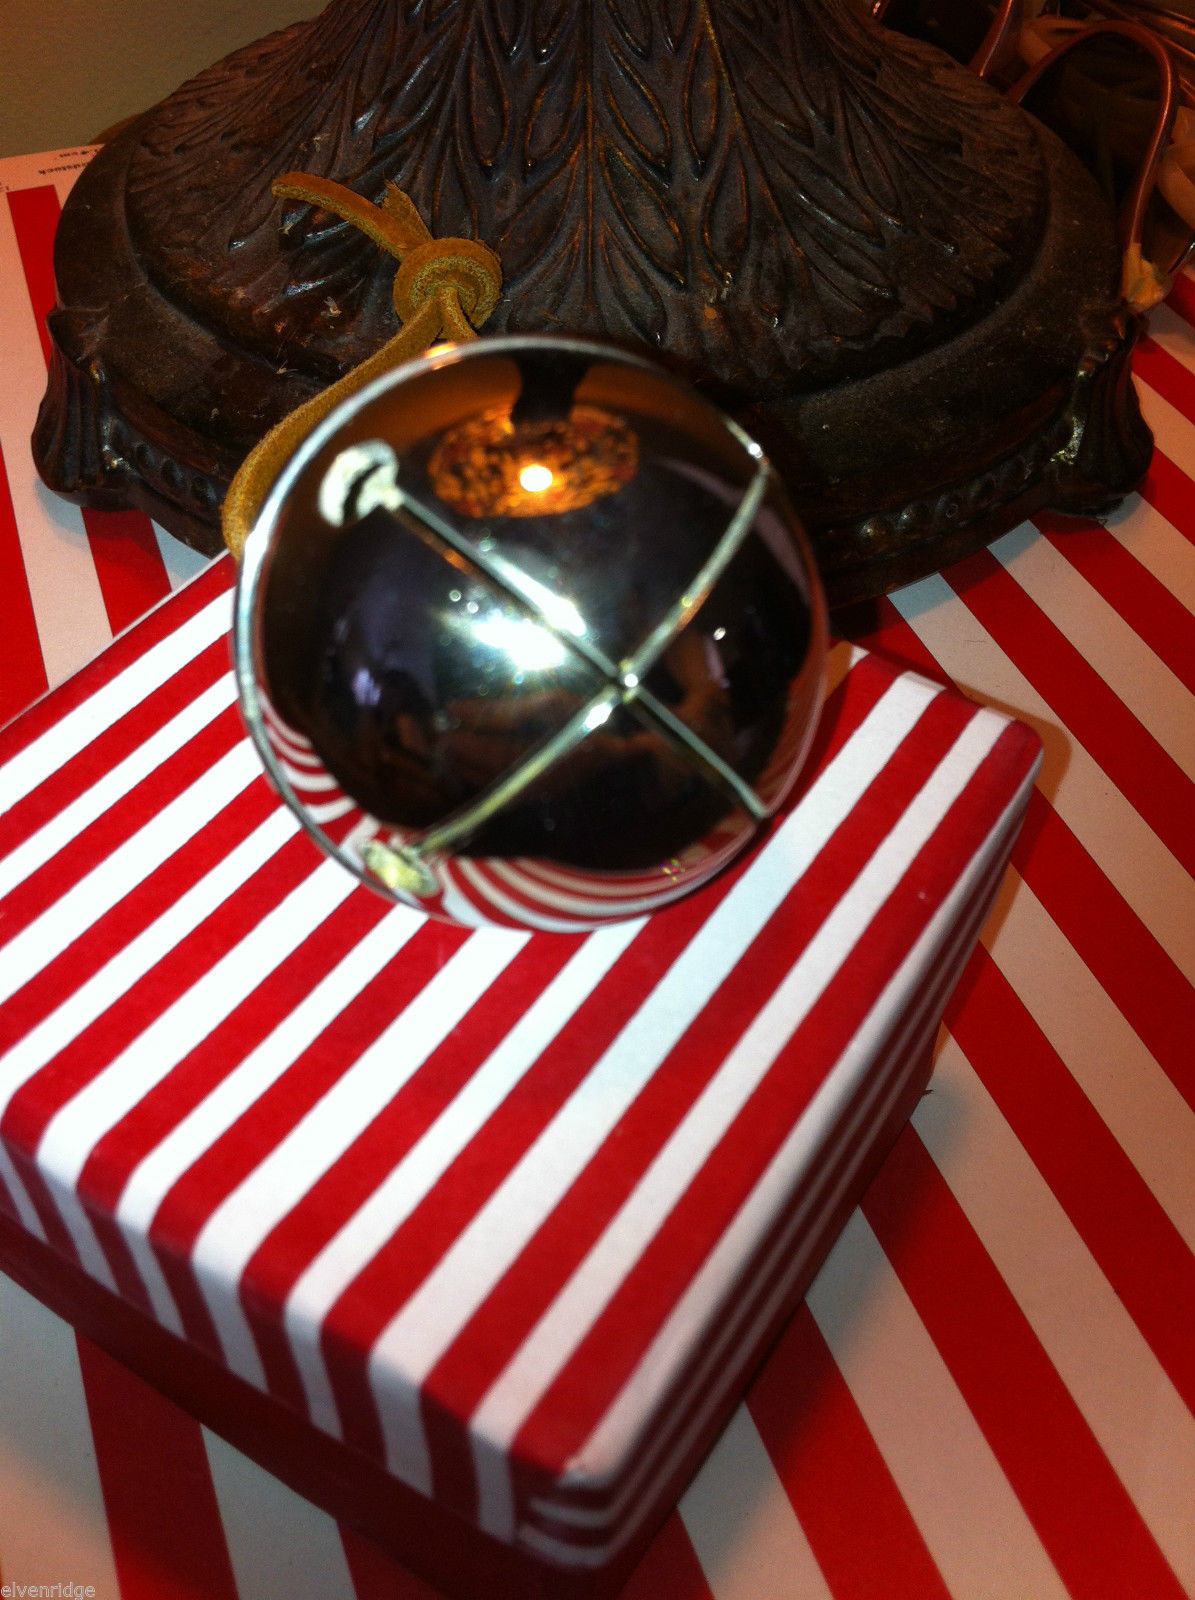 Polar bear Express SILVER Chrome Round BELIEVE Bell in striped elf deco box 2nds